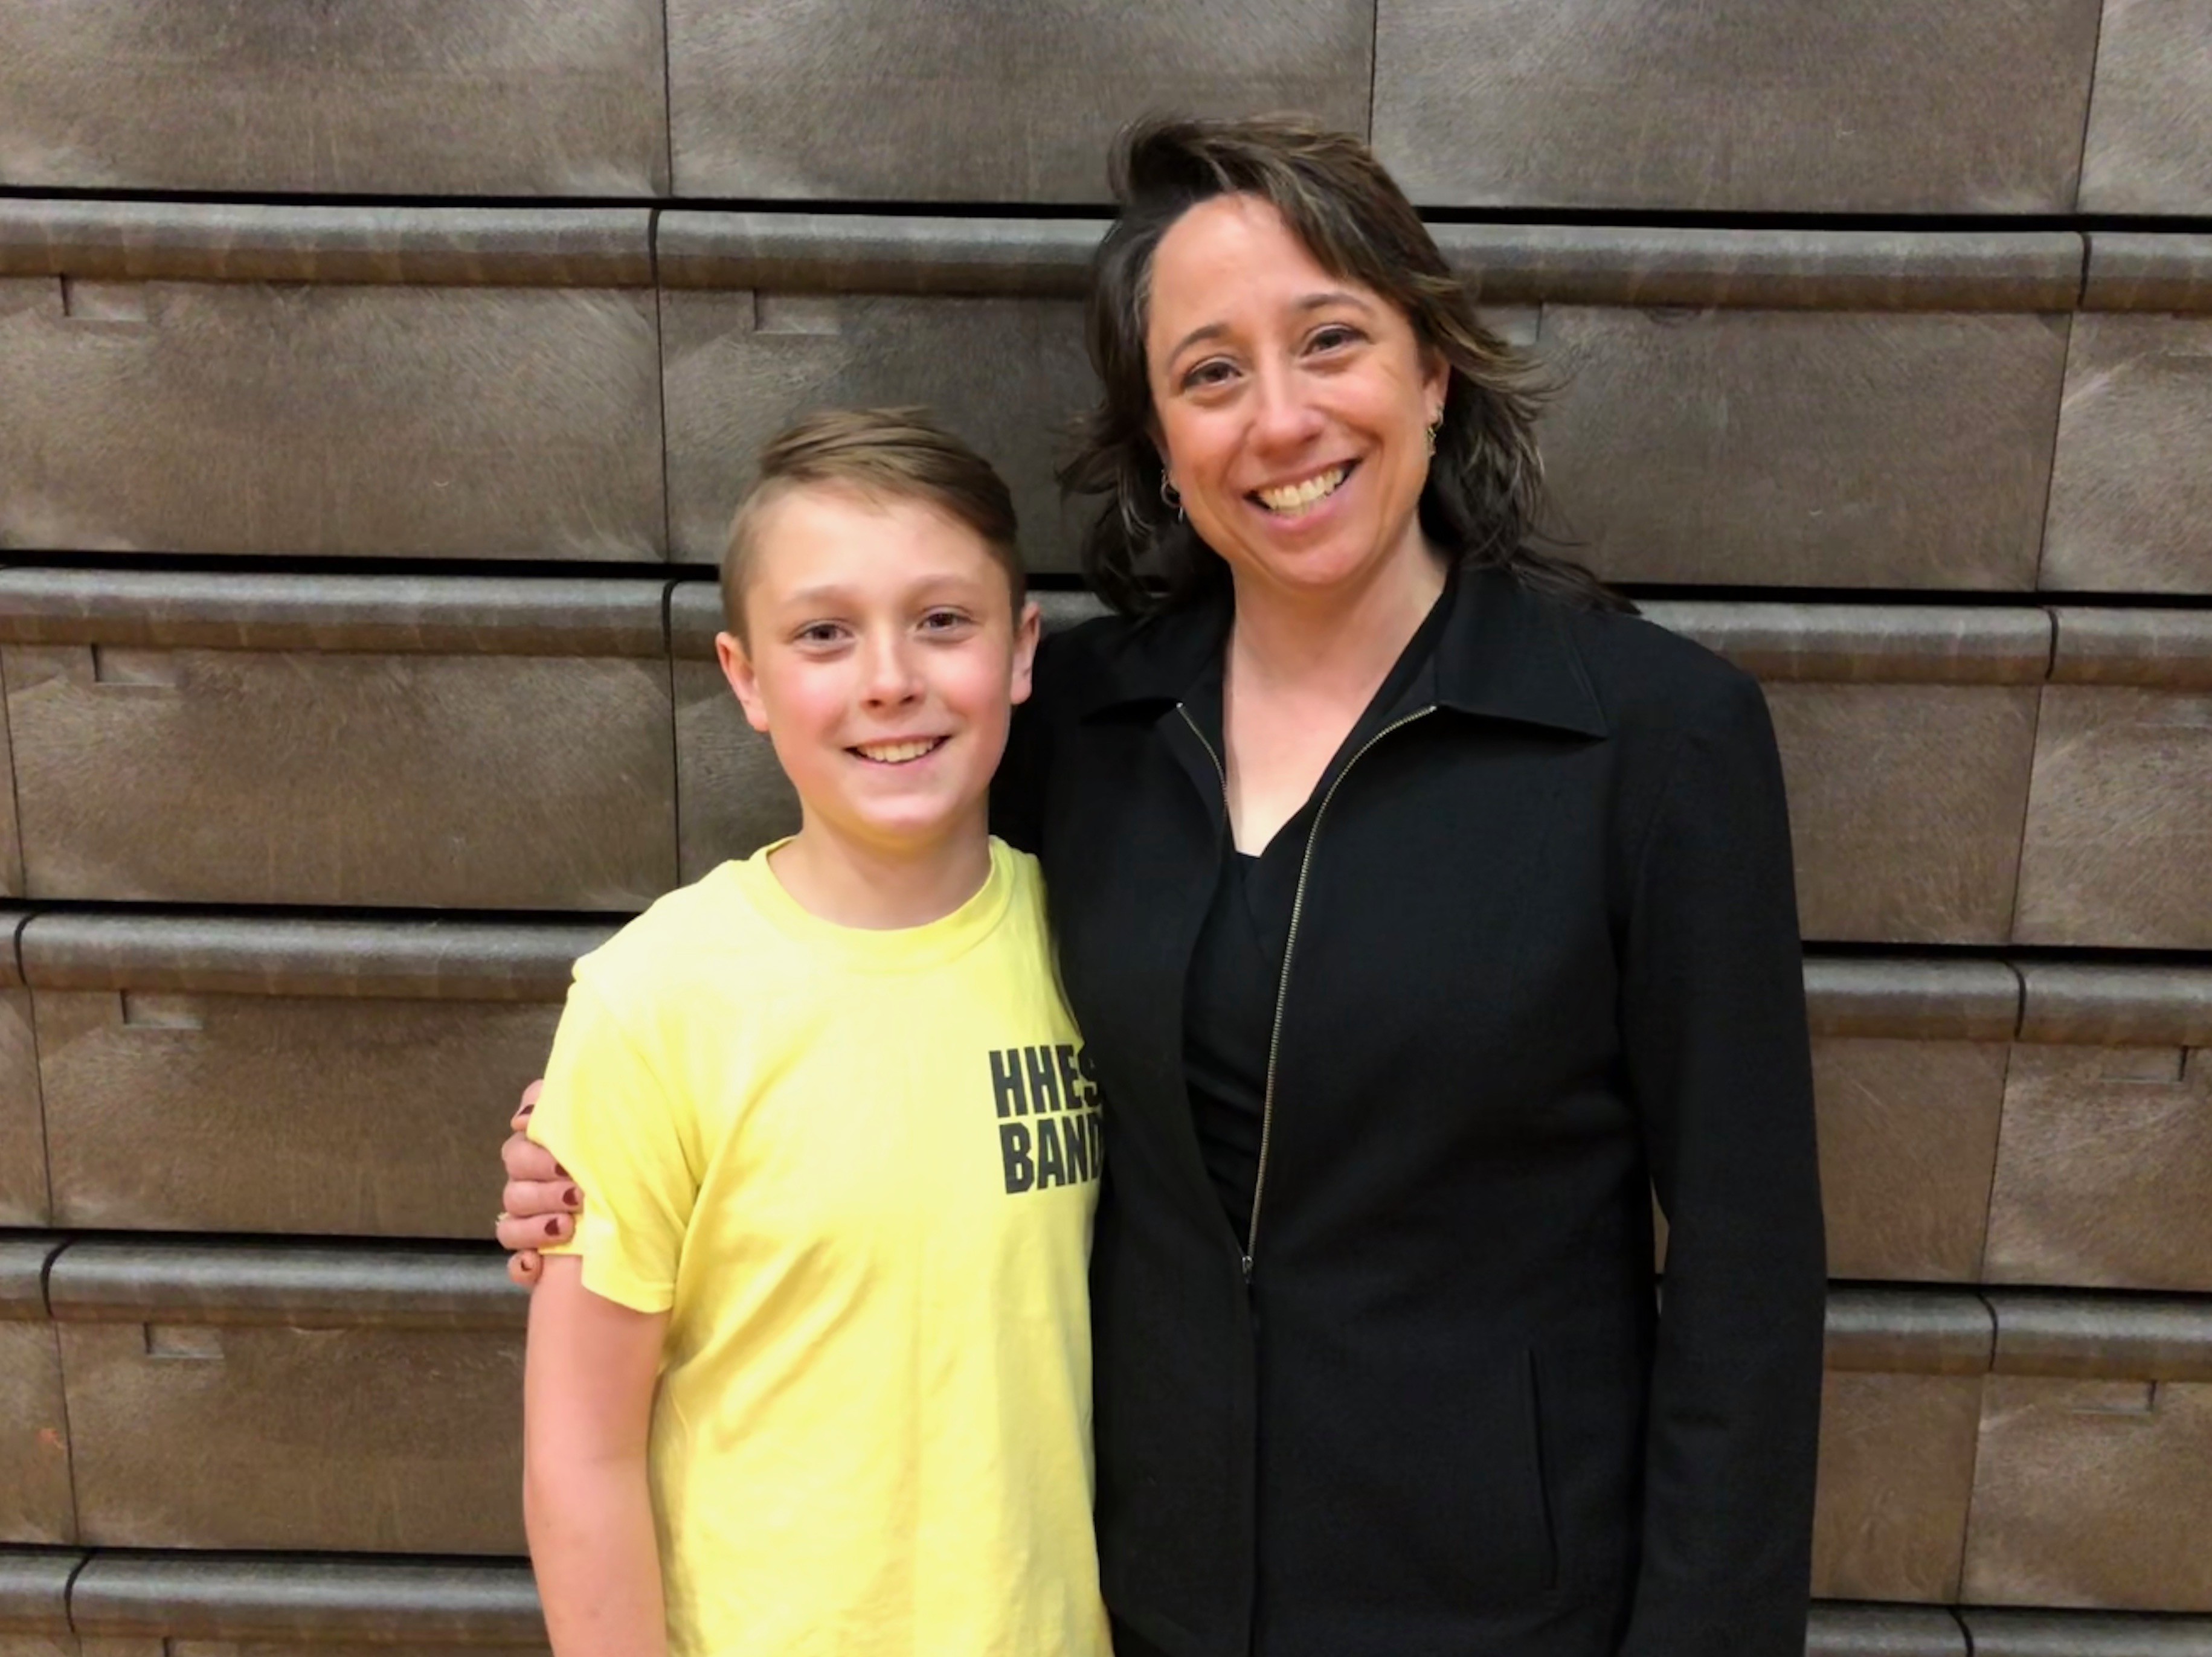 HMS Band director Jennifer Ritenburgh and her son